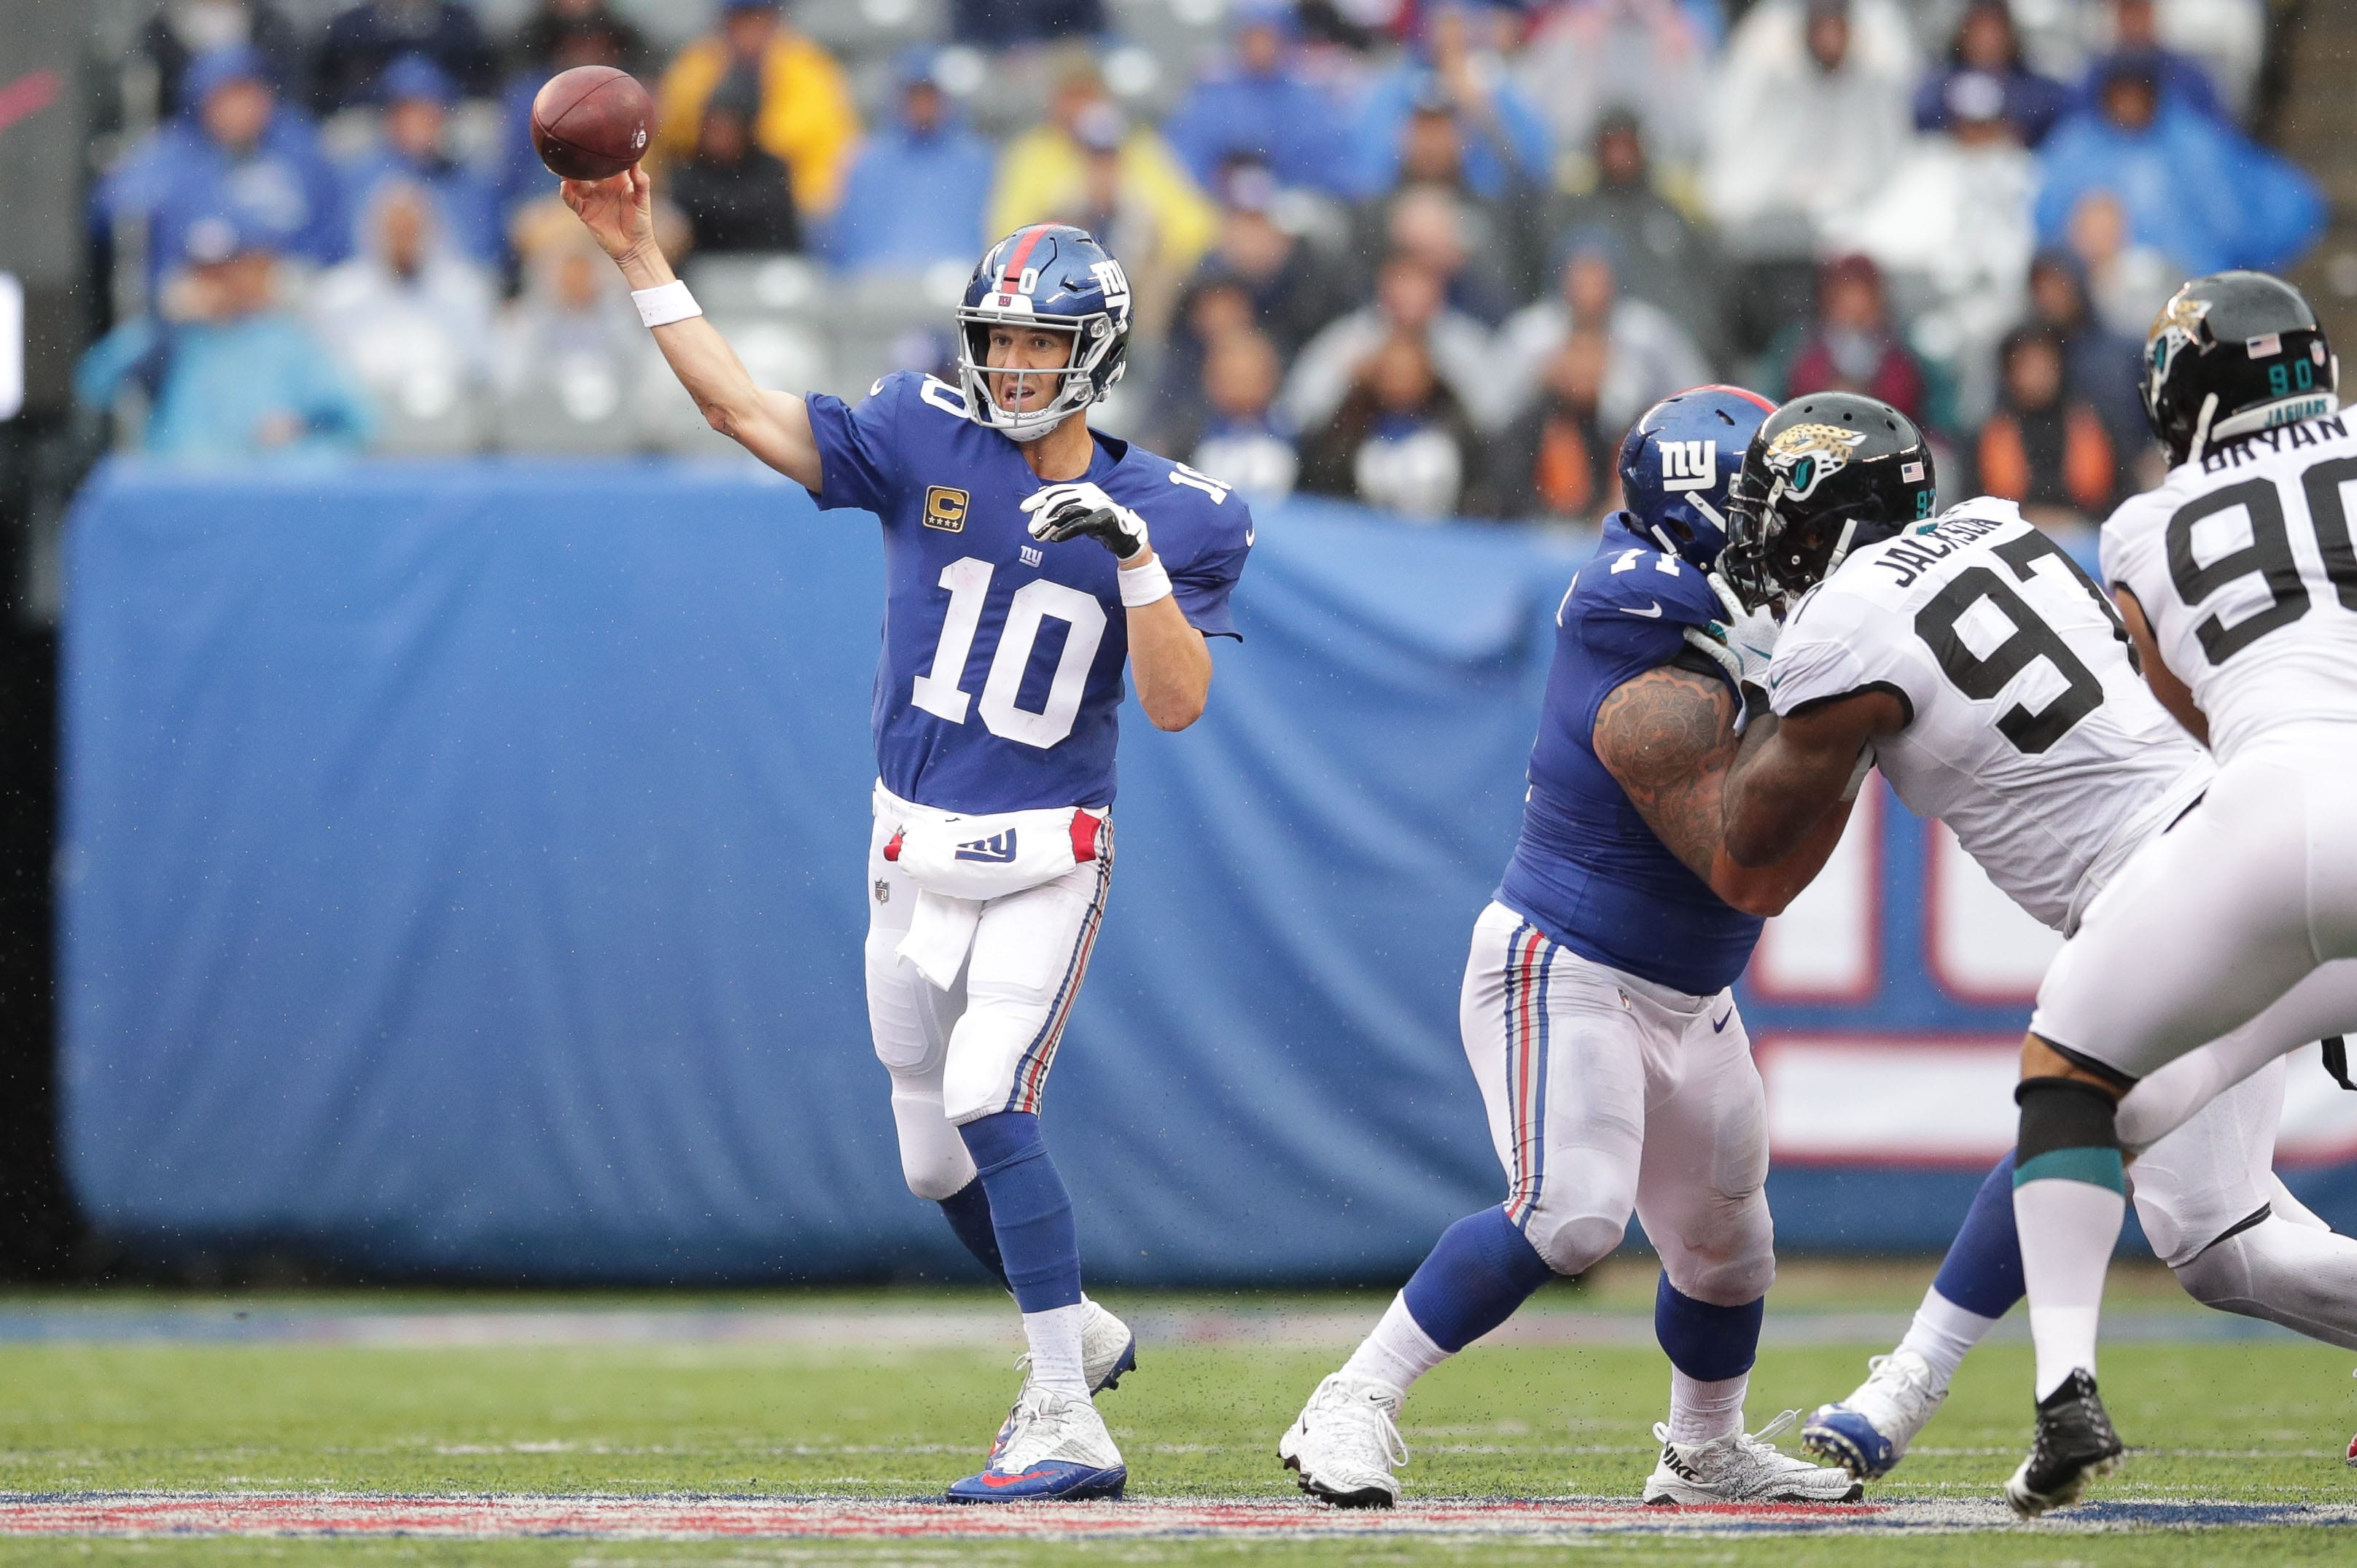 finest selection 9fa3f 9a9ae New York Giants Top News 5/23: Will Hernandez is the next ...